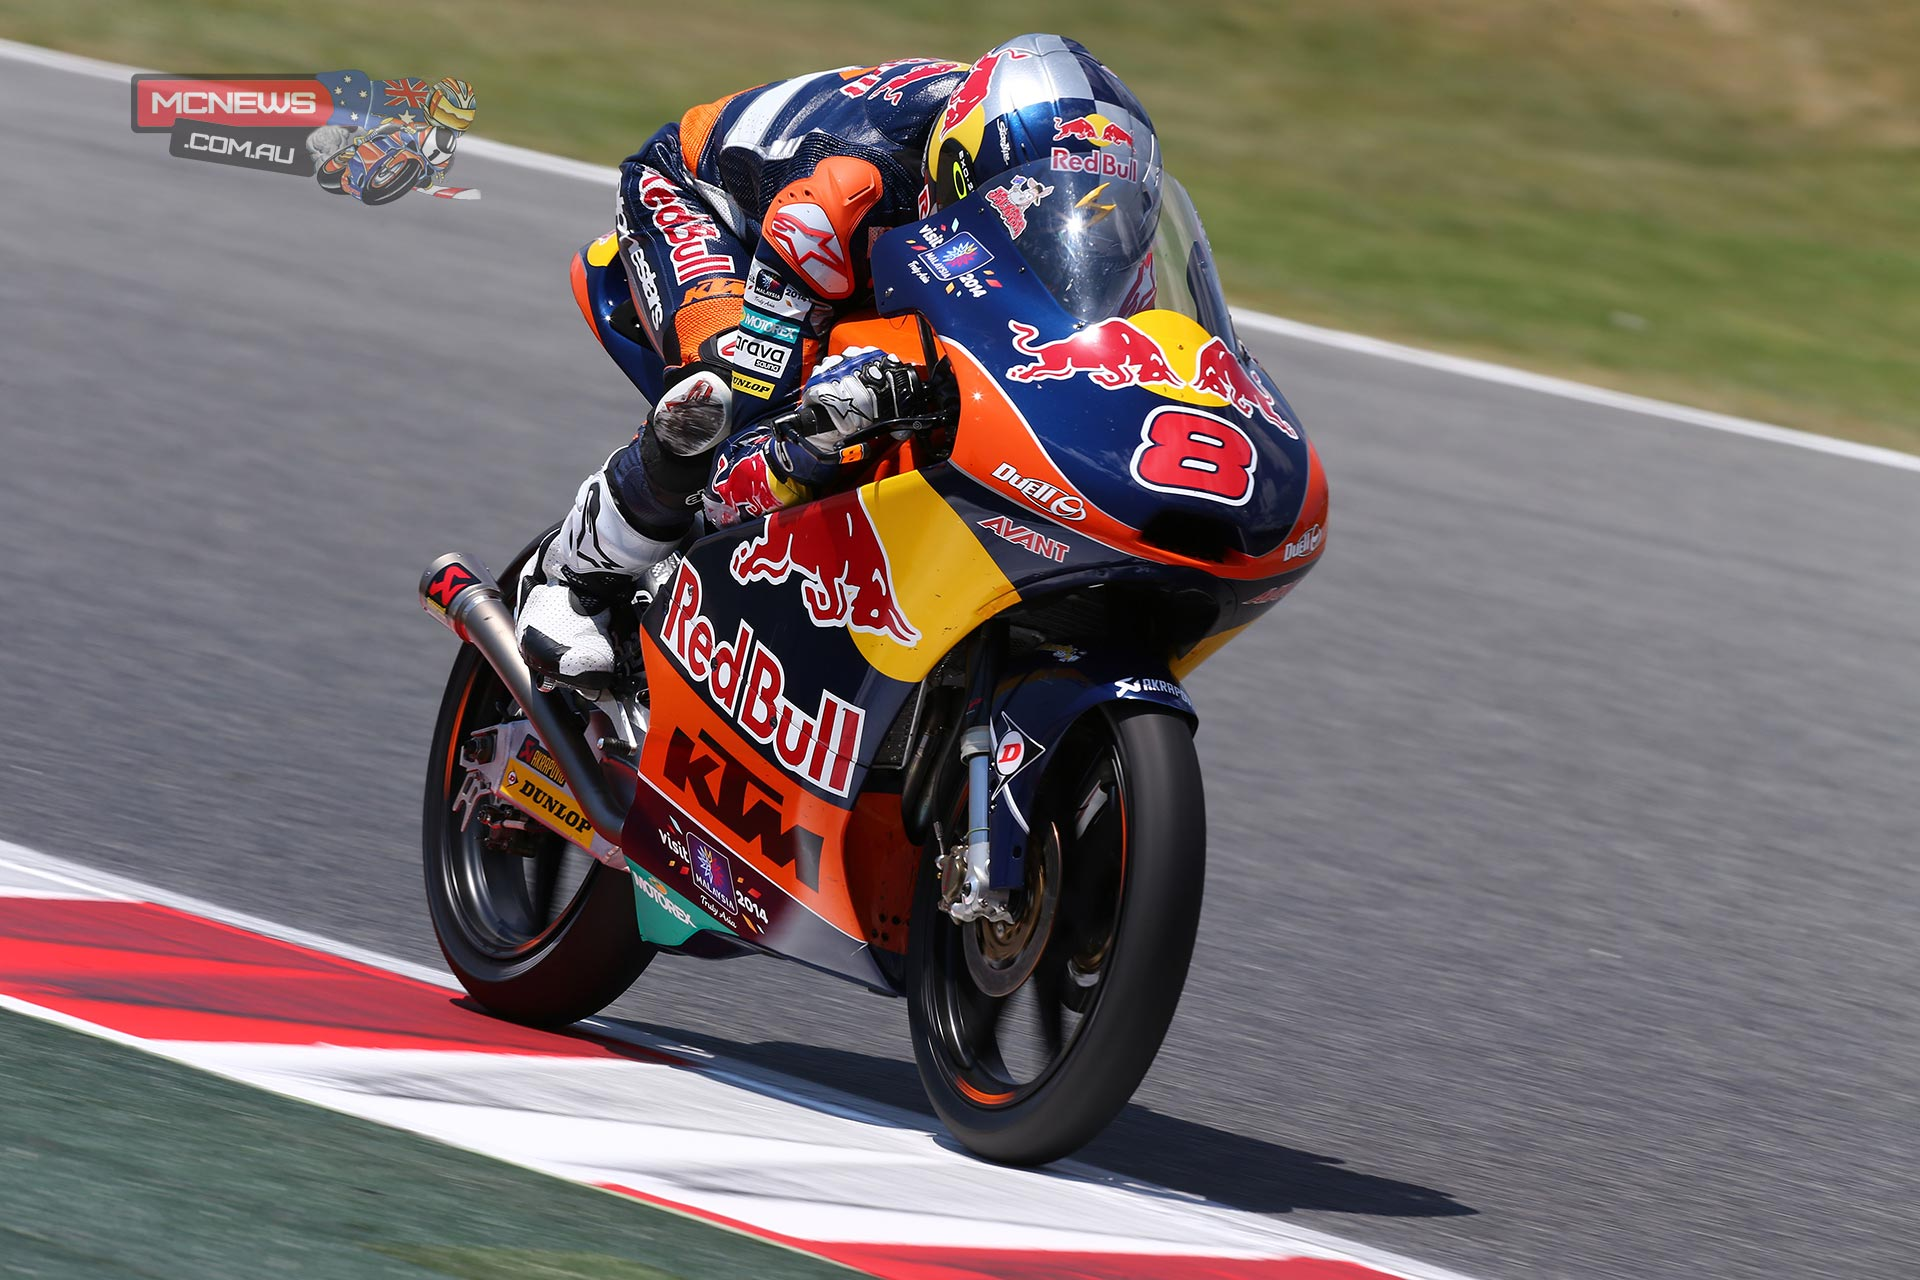 It looked almost certain that Jack Miller would relinquish the Moto3™ World Championship advantage to Romano Fenati during the closing stages of the Catalan Grand Prix, but the Australian would again pull a rabbit out of the hat to continue leading as the battle moved on to Assen.